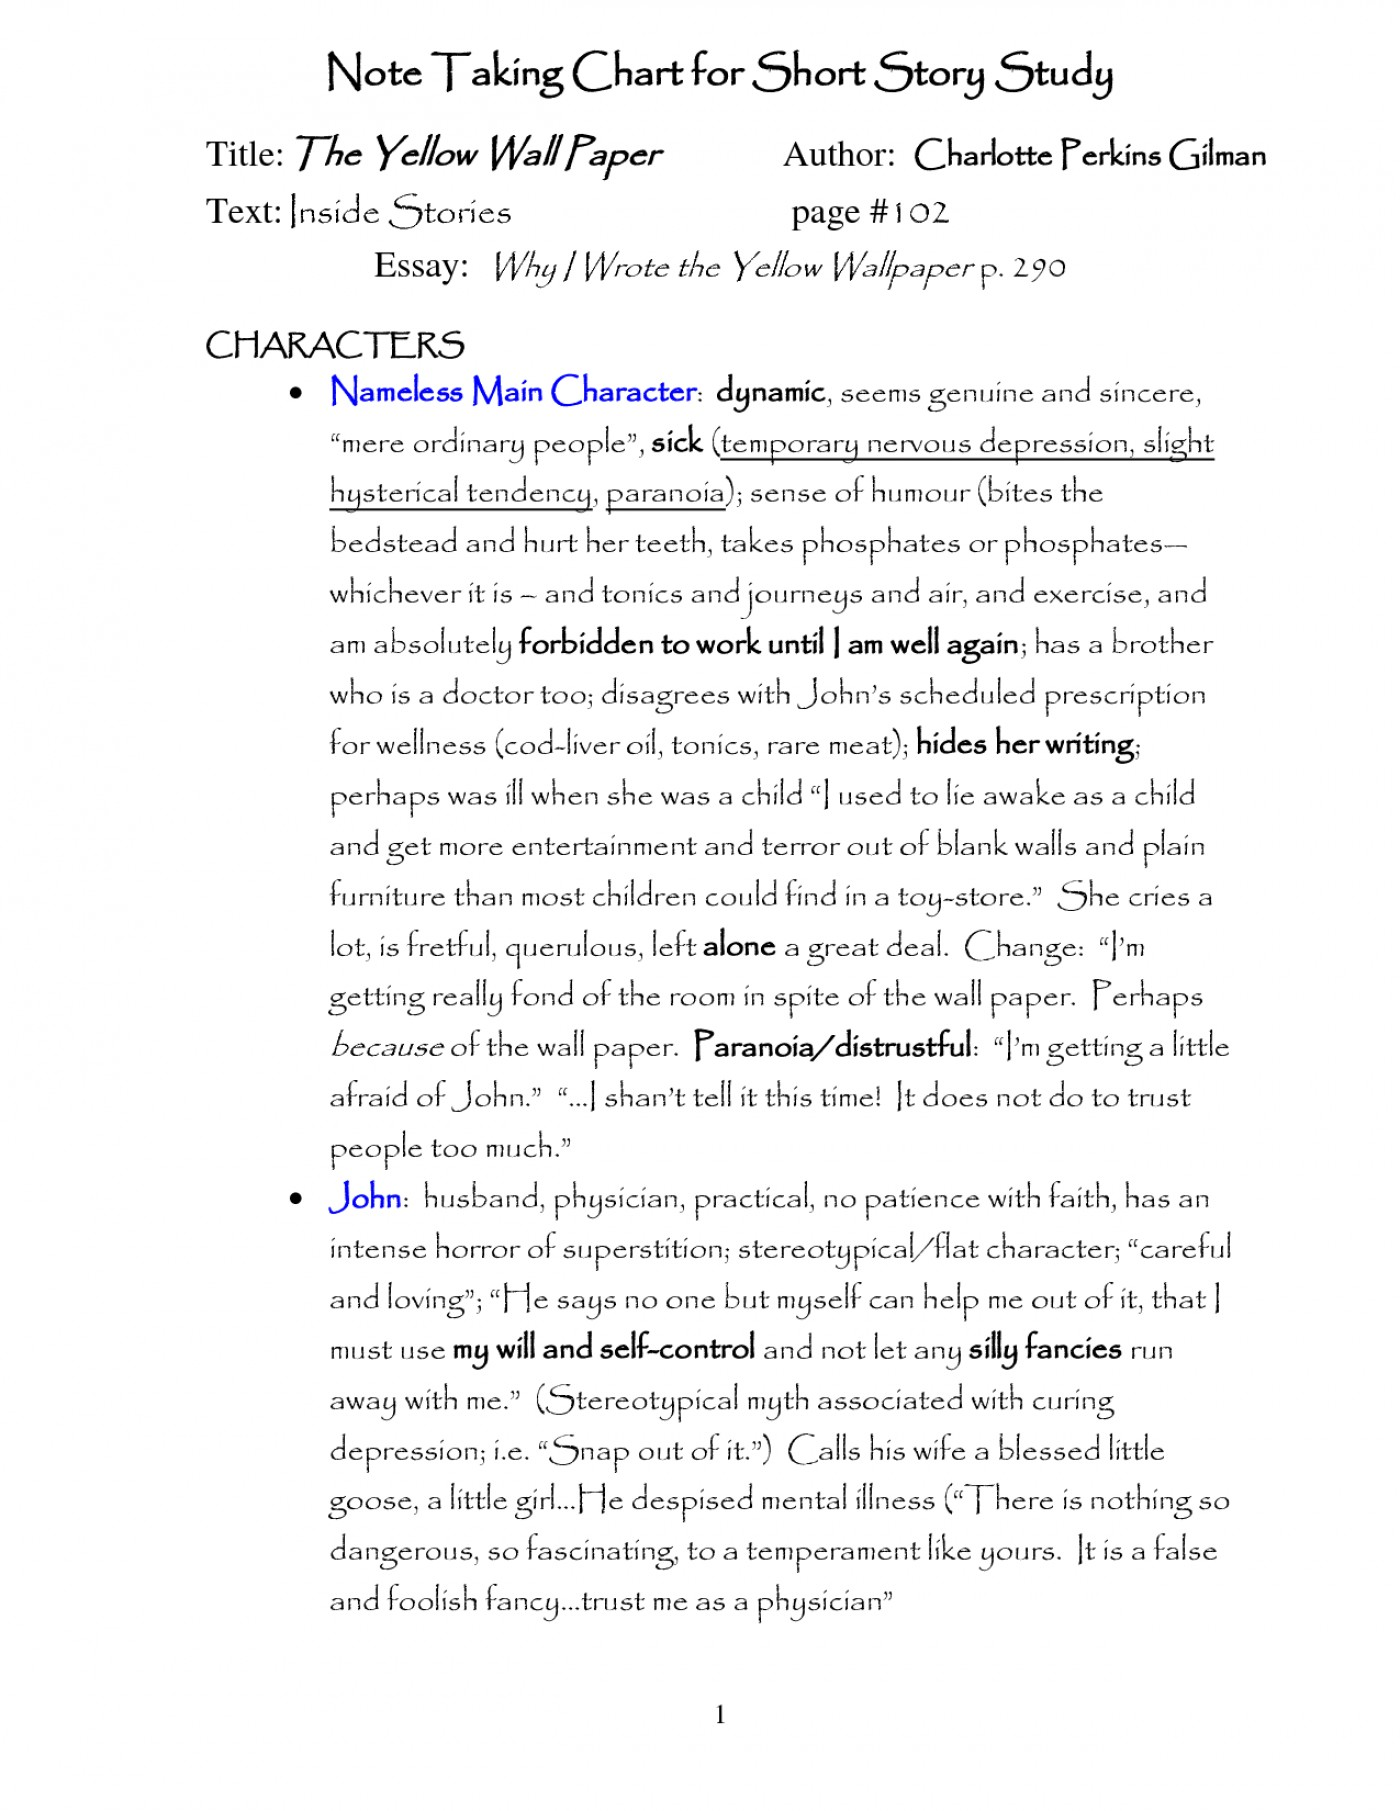 003 The Yellow Wallpaper Essay Qbyjop Top Feminism Research Paper Outline Conclusion 1400